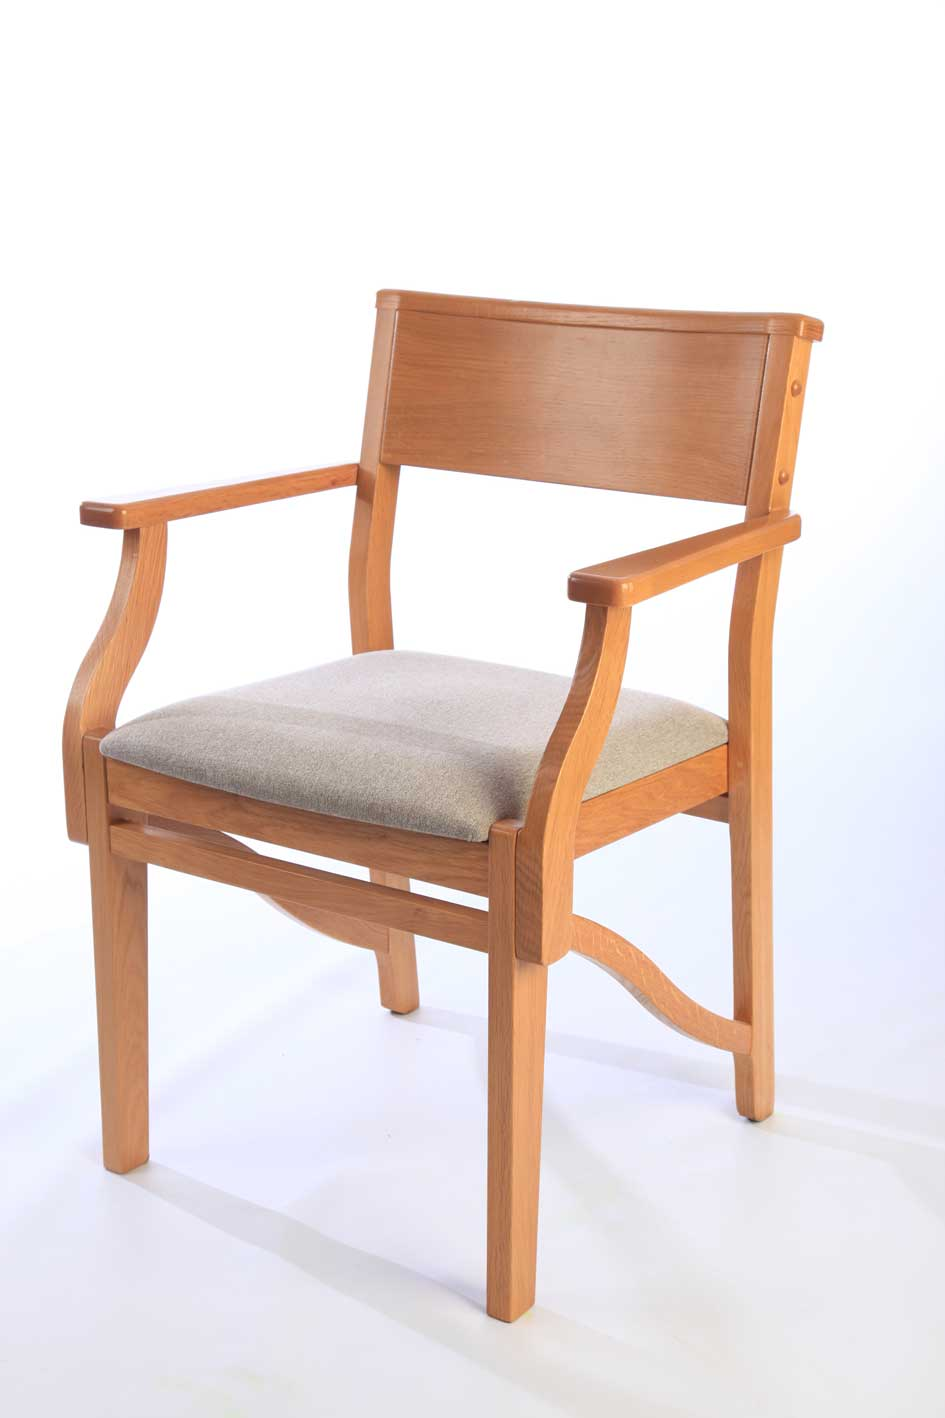 ICS Upholstered Non Stackable Wooden Chair